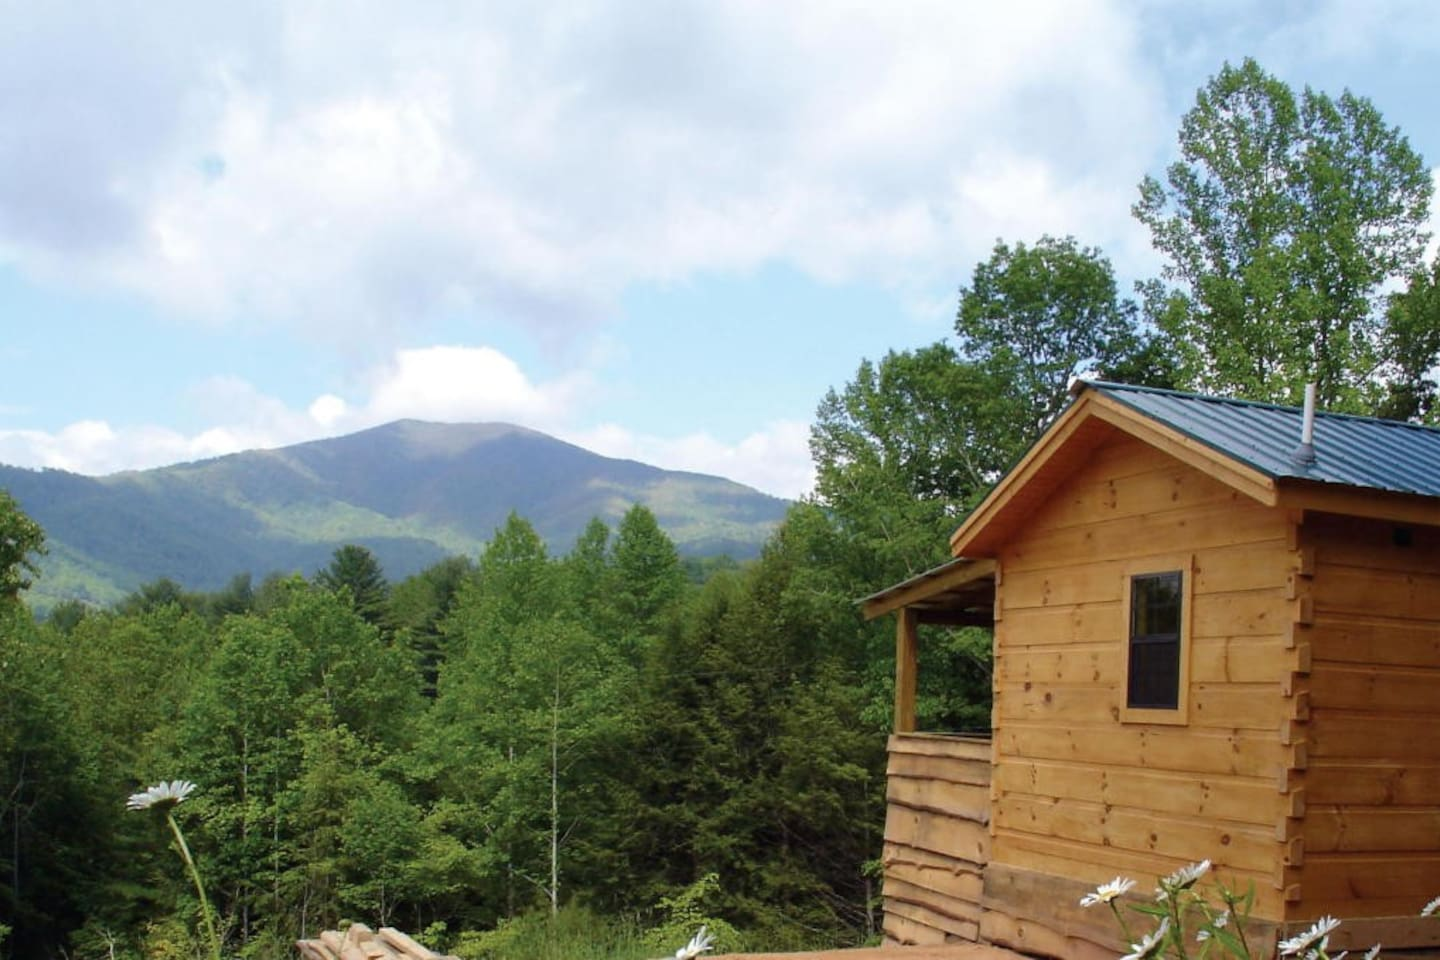 Hot Springs Log Cabins and Bluff Mountain